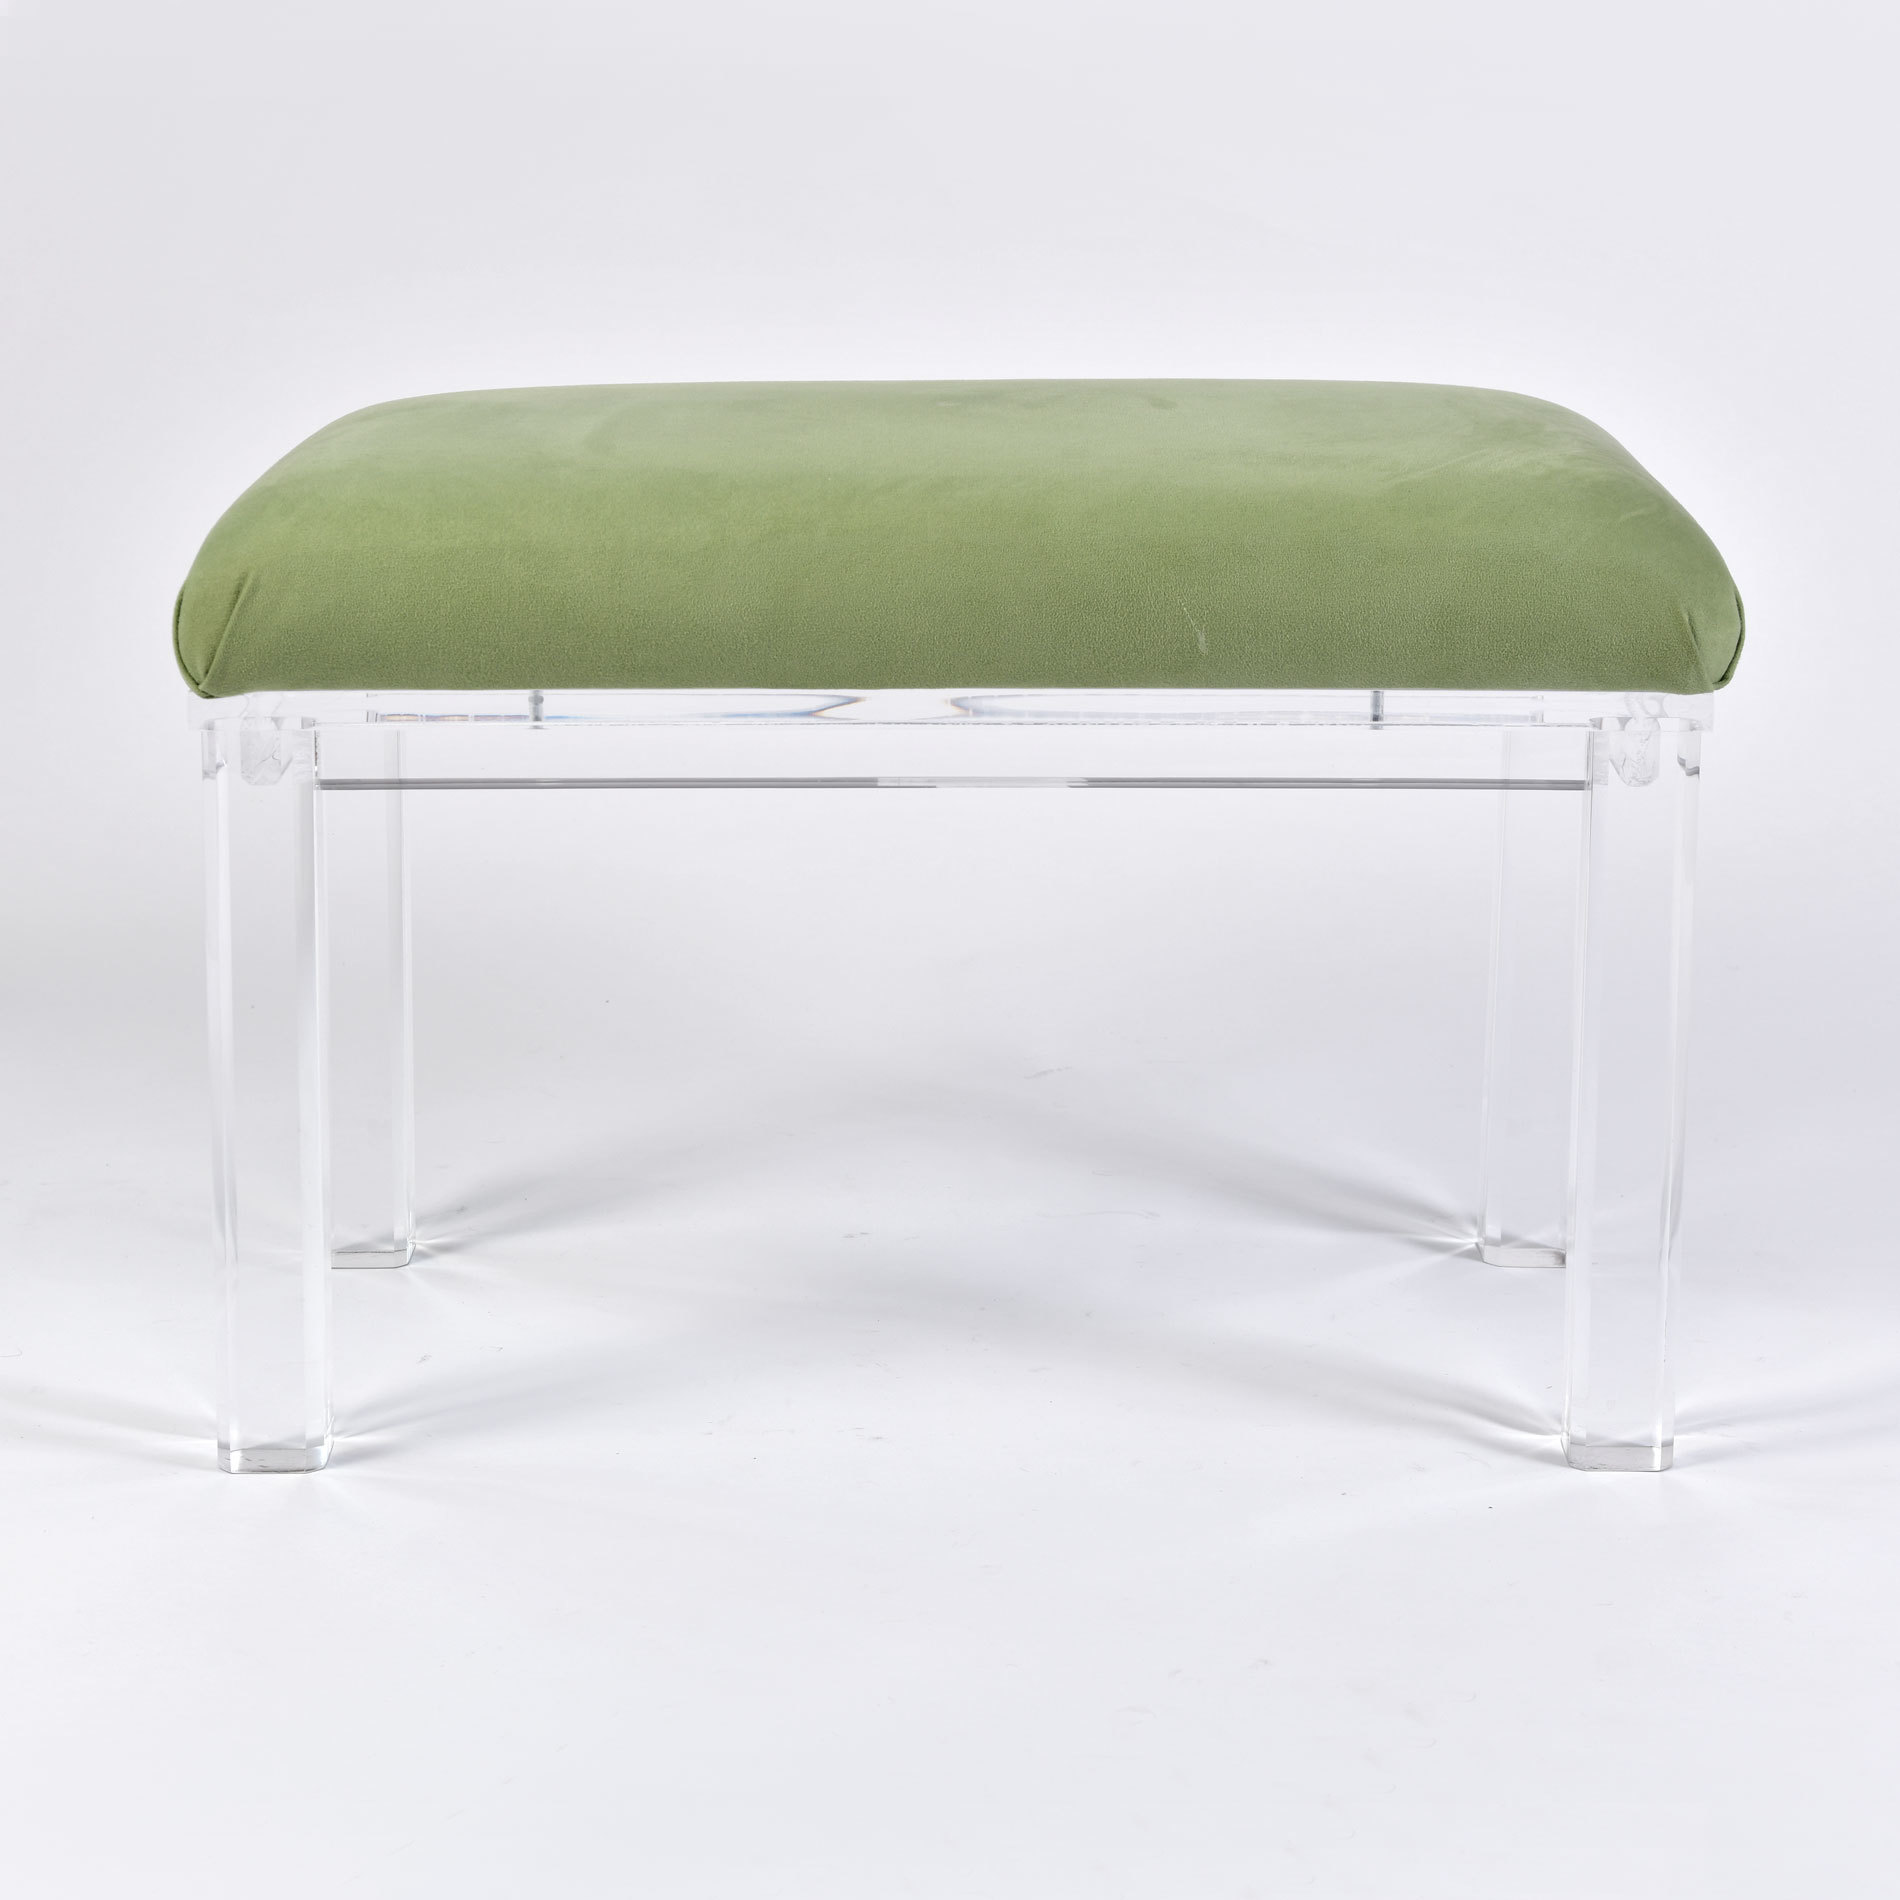 The image for Carmichael Lucite Bench 01